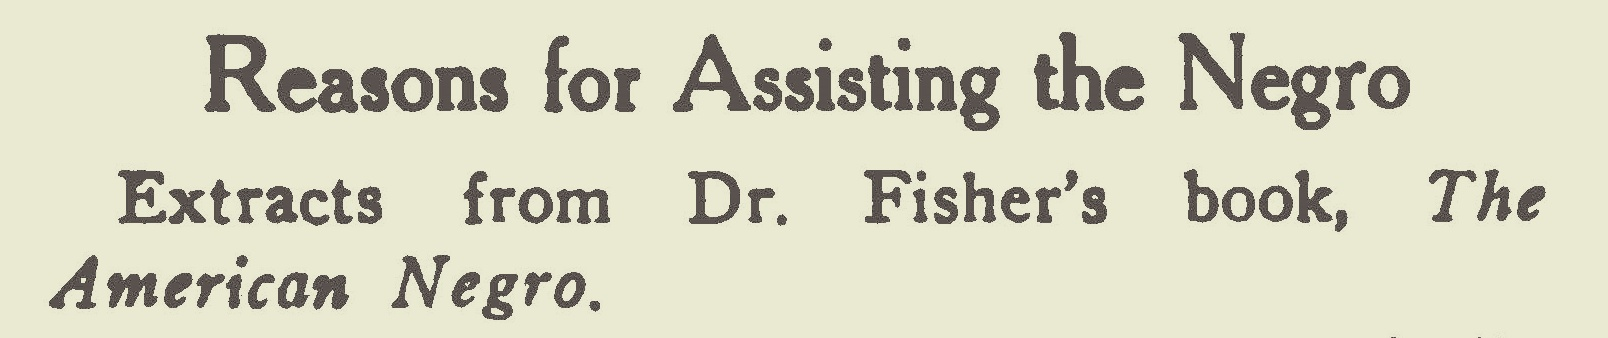 Fisher, Samuel Jackson, Reasons for Assisting the Negro Title Page.jpg